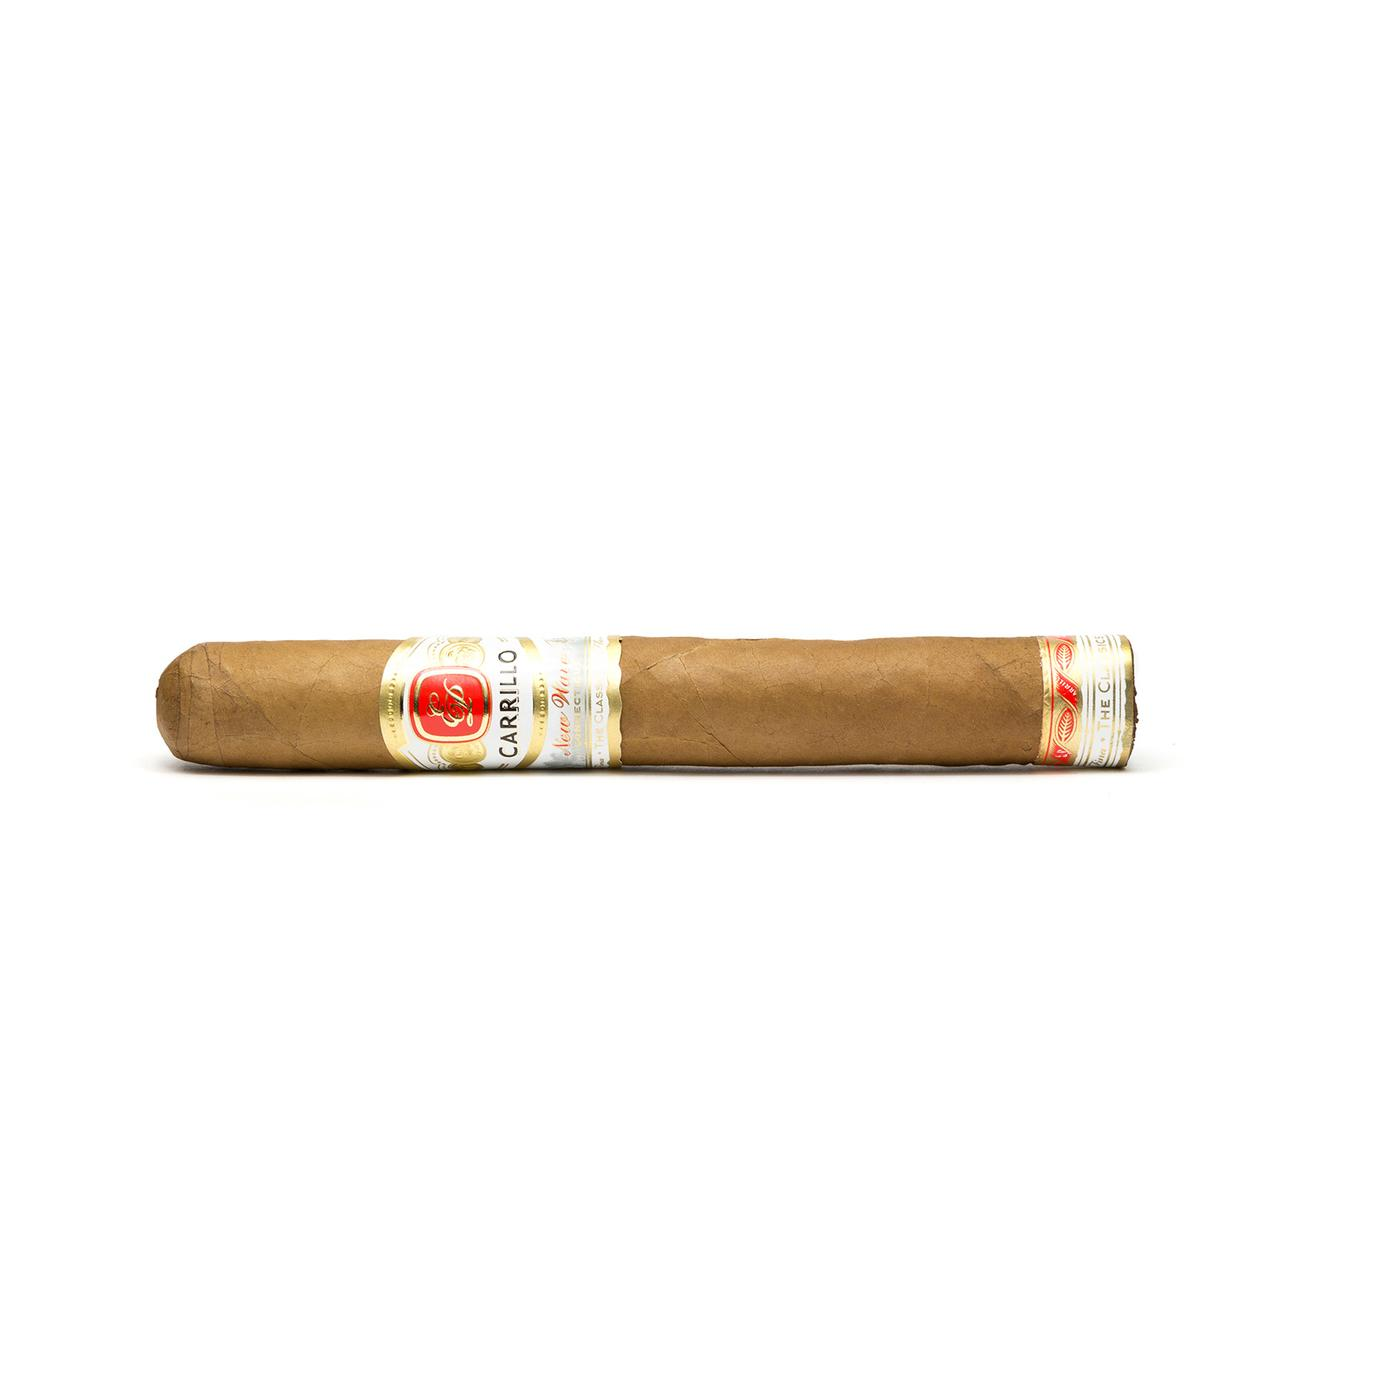 Carrillo New Wave Connecticut Divinos